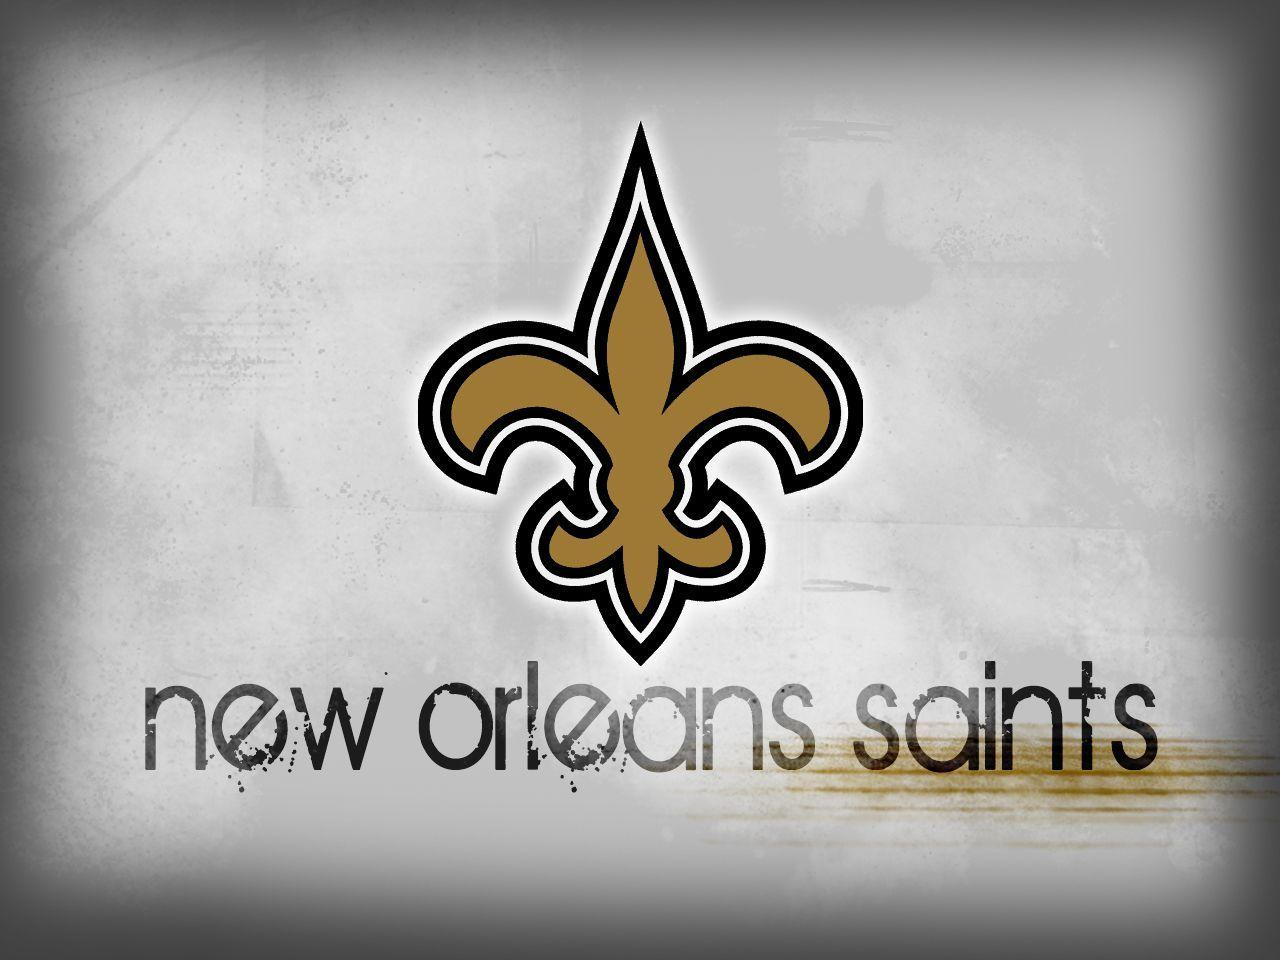 Wallpapers of the day: New Orleans Saints